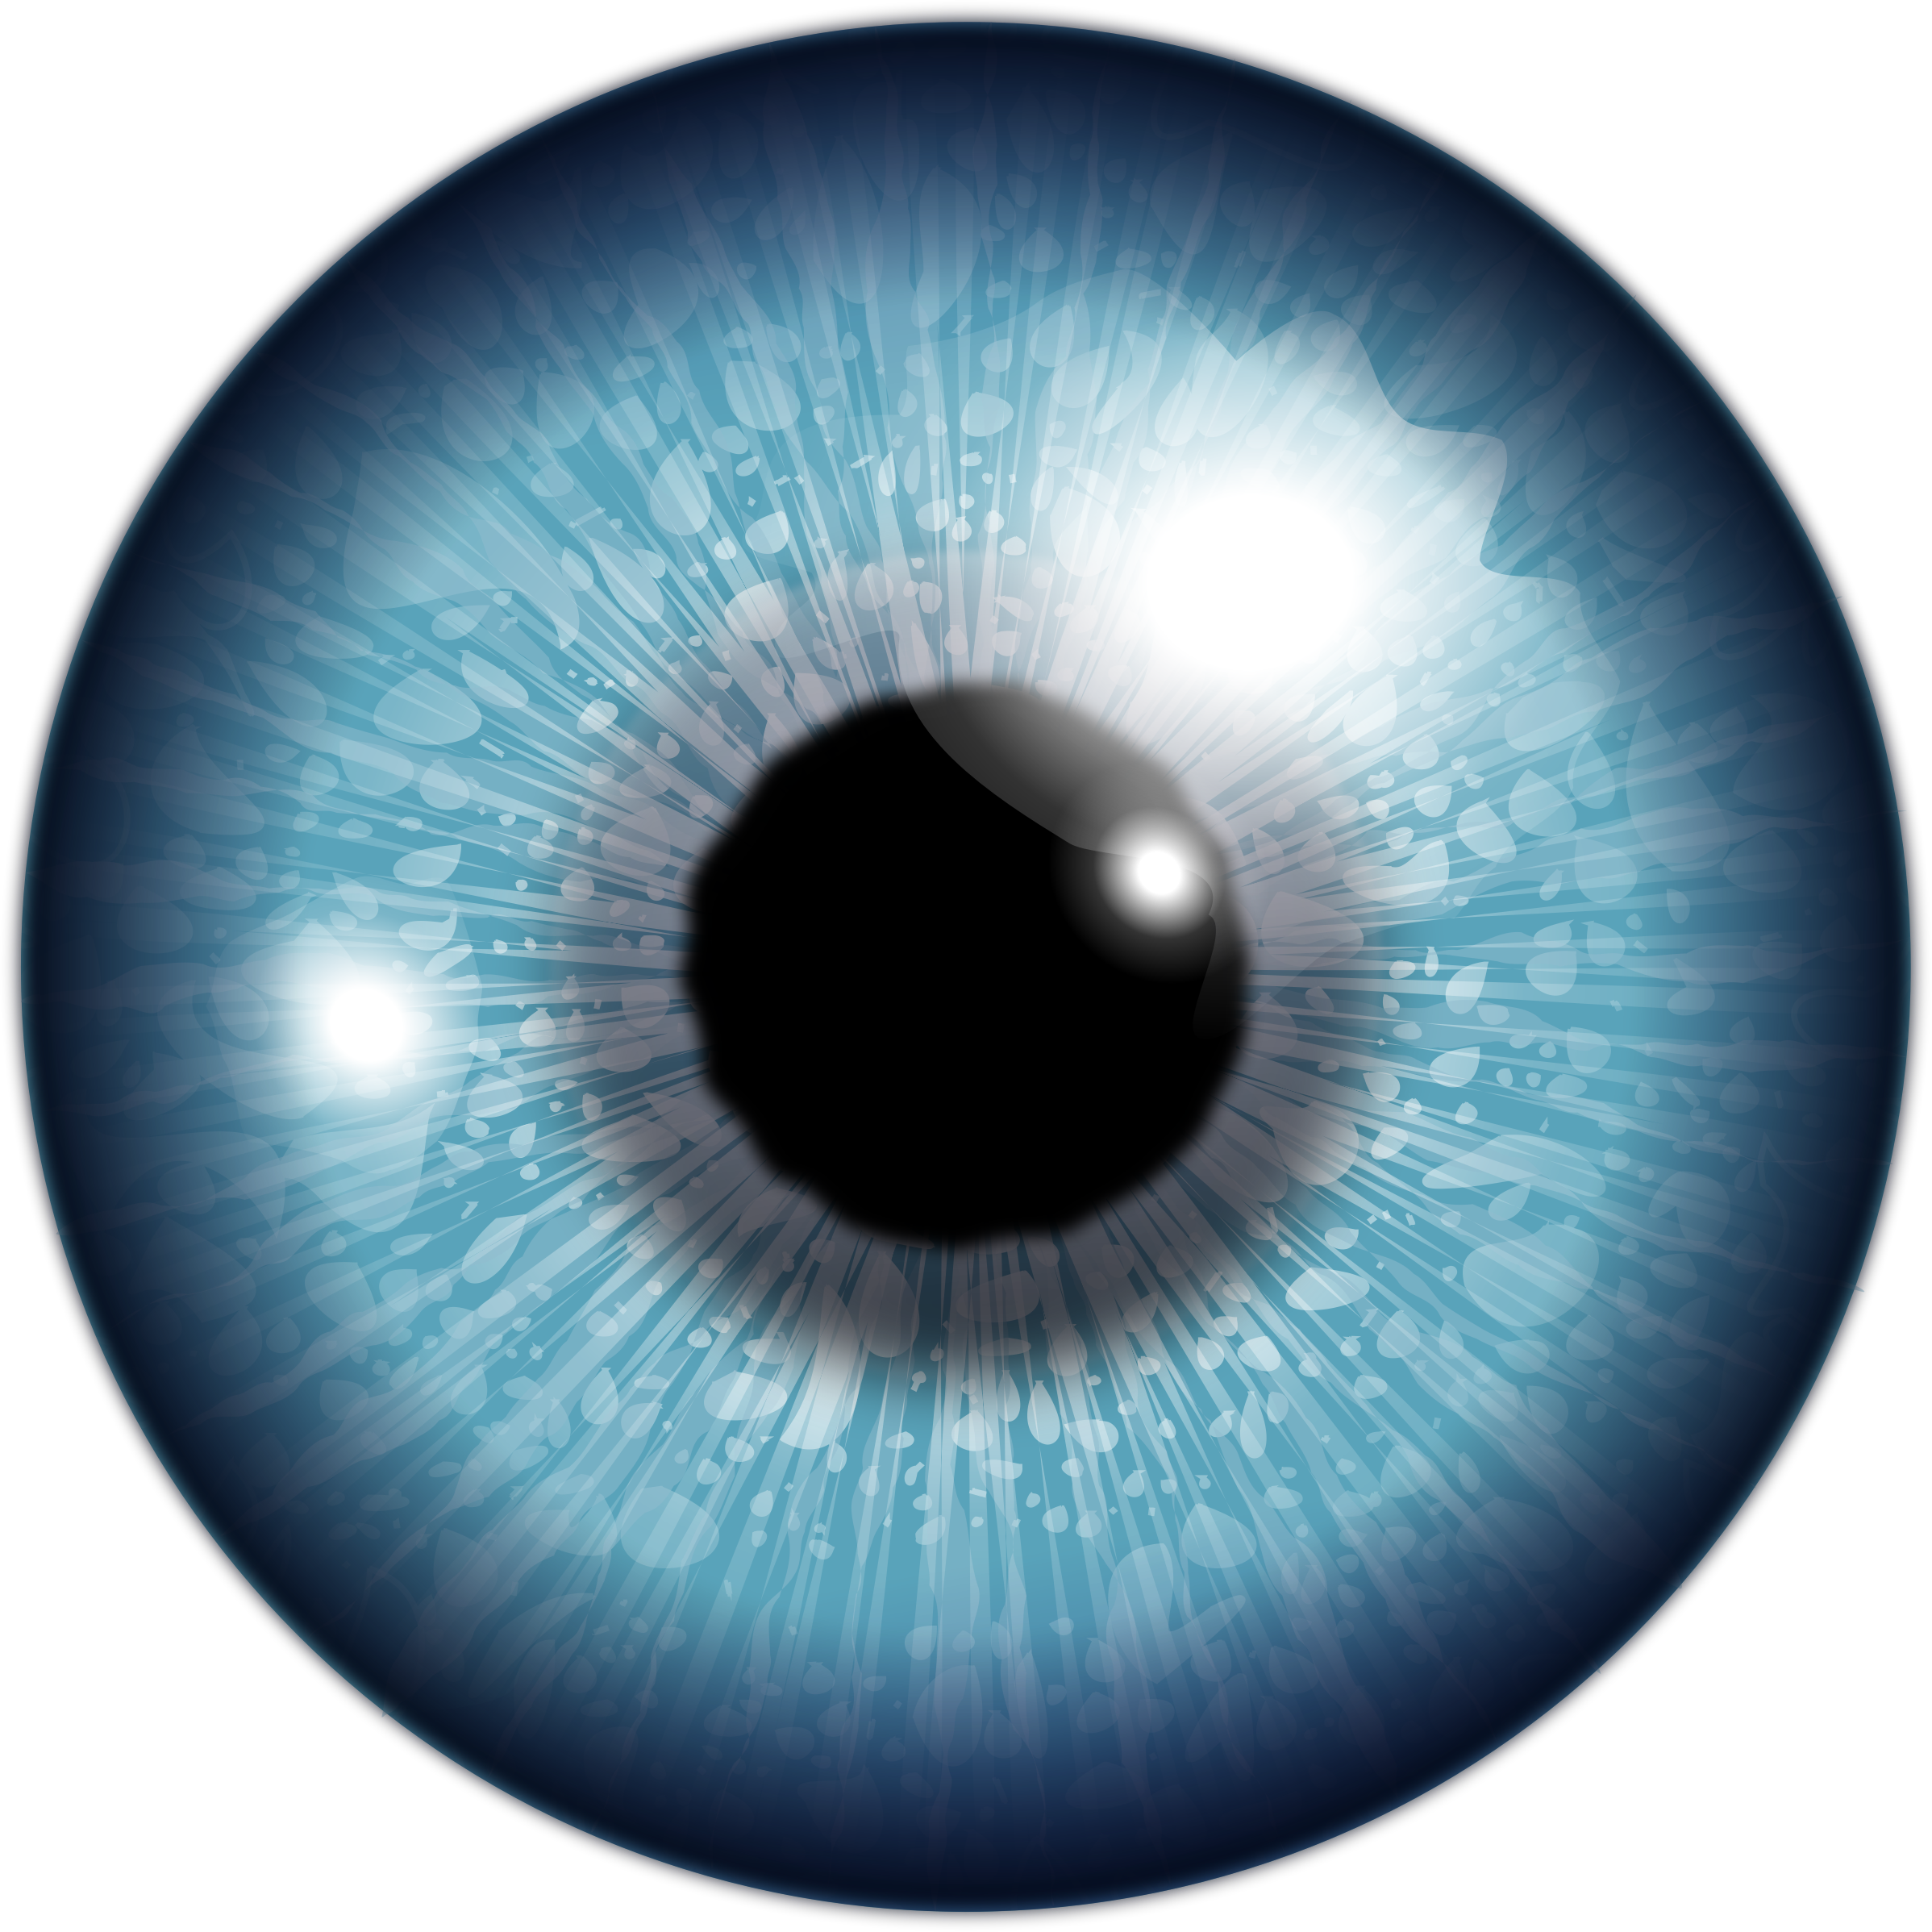 Drawing photoshop human eye. Eyes png image purepng